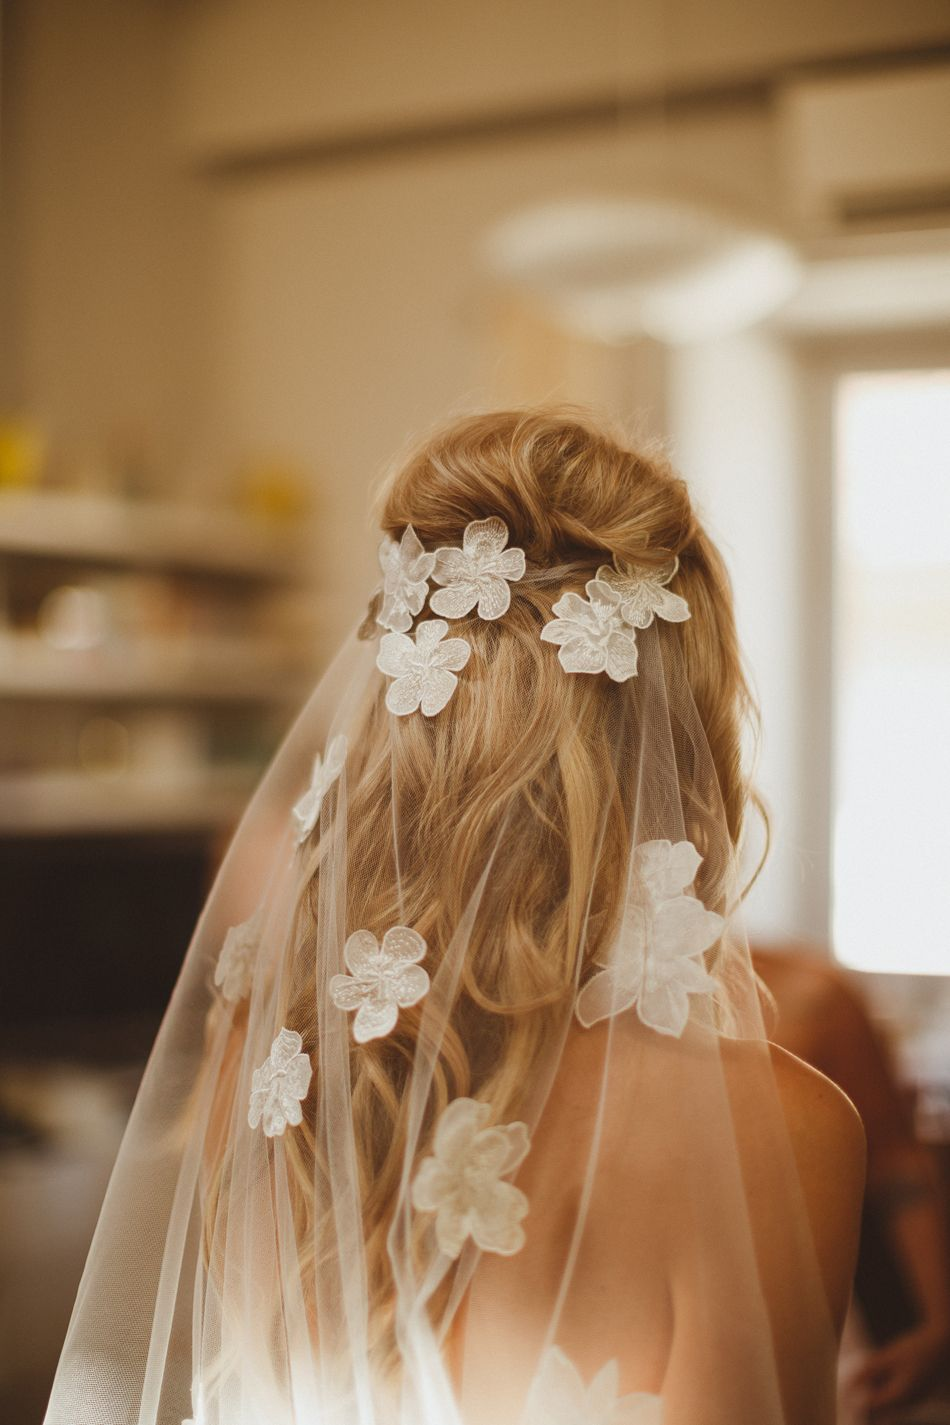 italian wedding with old world european charm | veils